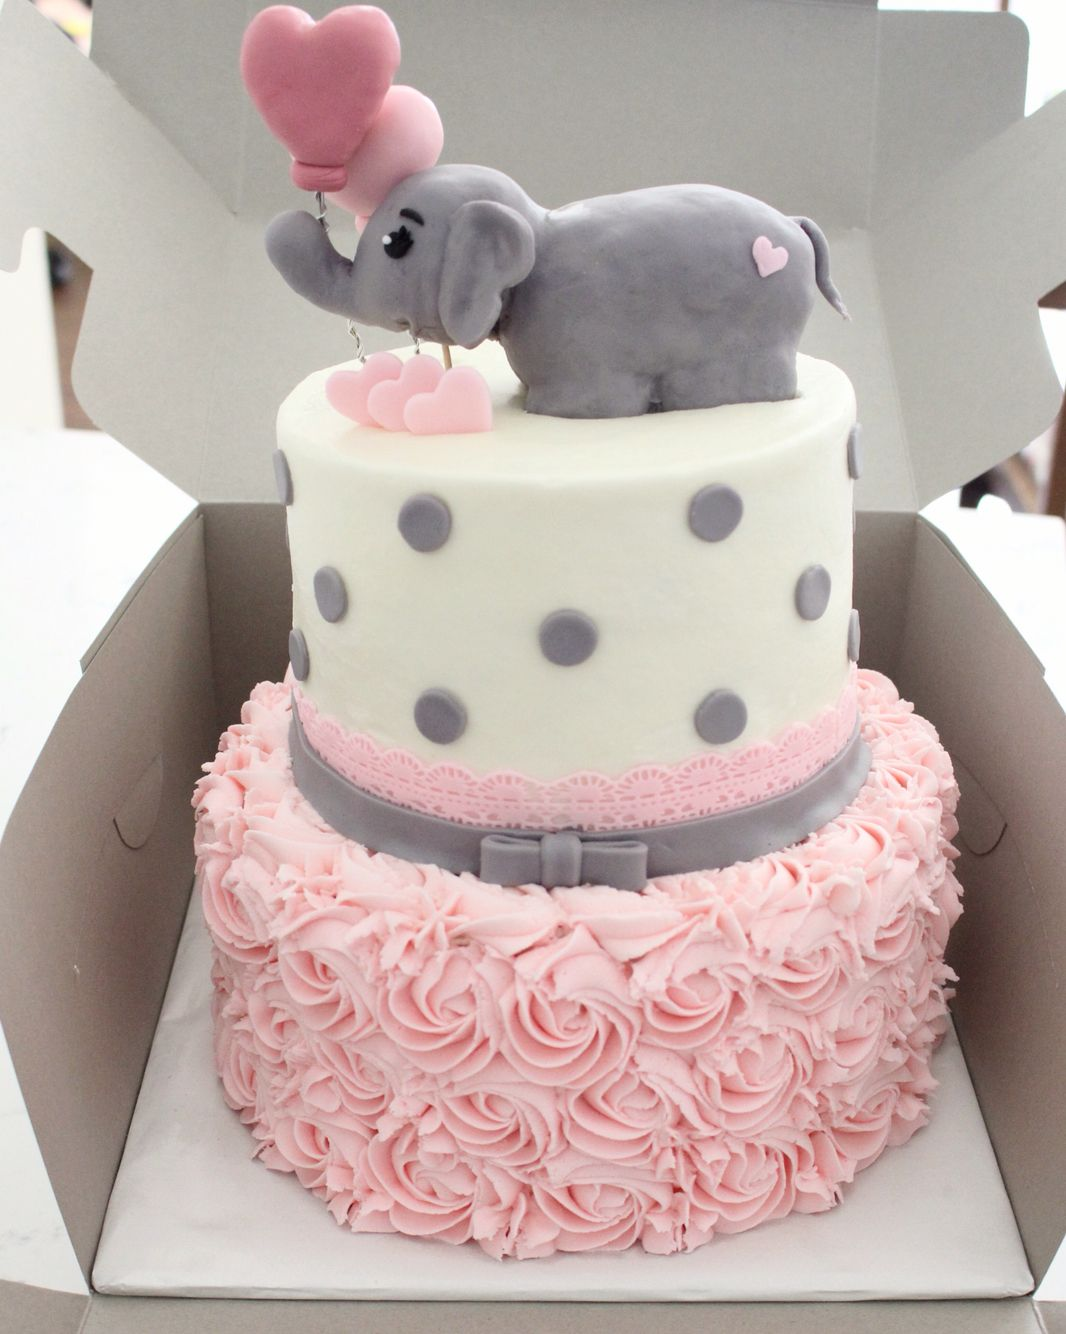 Decoration Ideas Baby Shower Girl Cute Baby Shower Decoration Cake Ideas Baby Shower Ideas